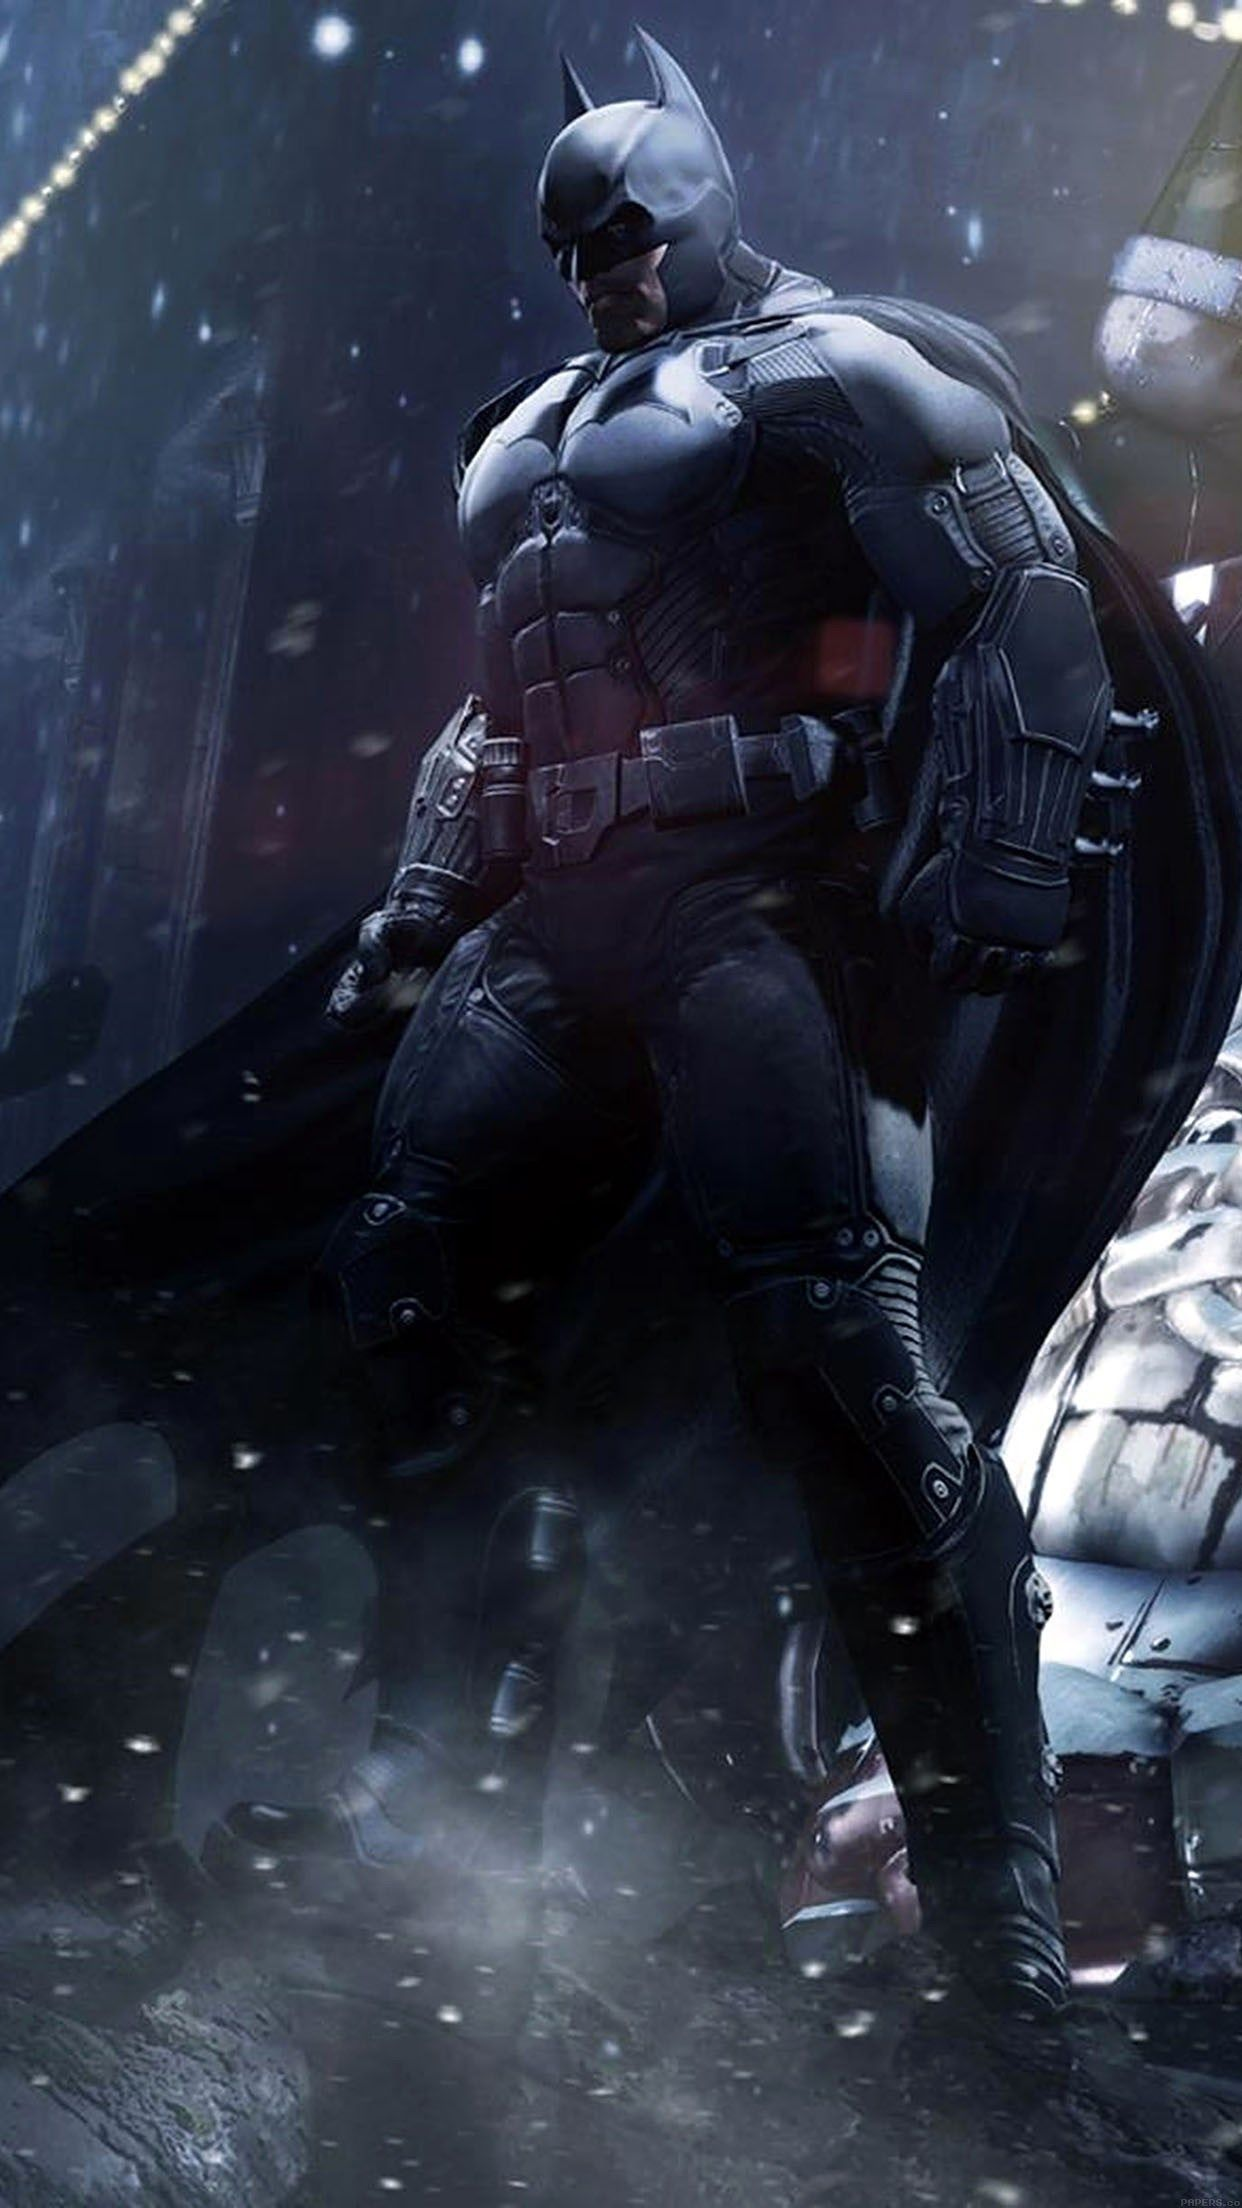 Batman Iphone Wallpaper Hd Download